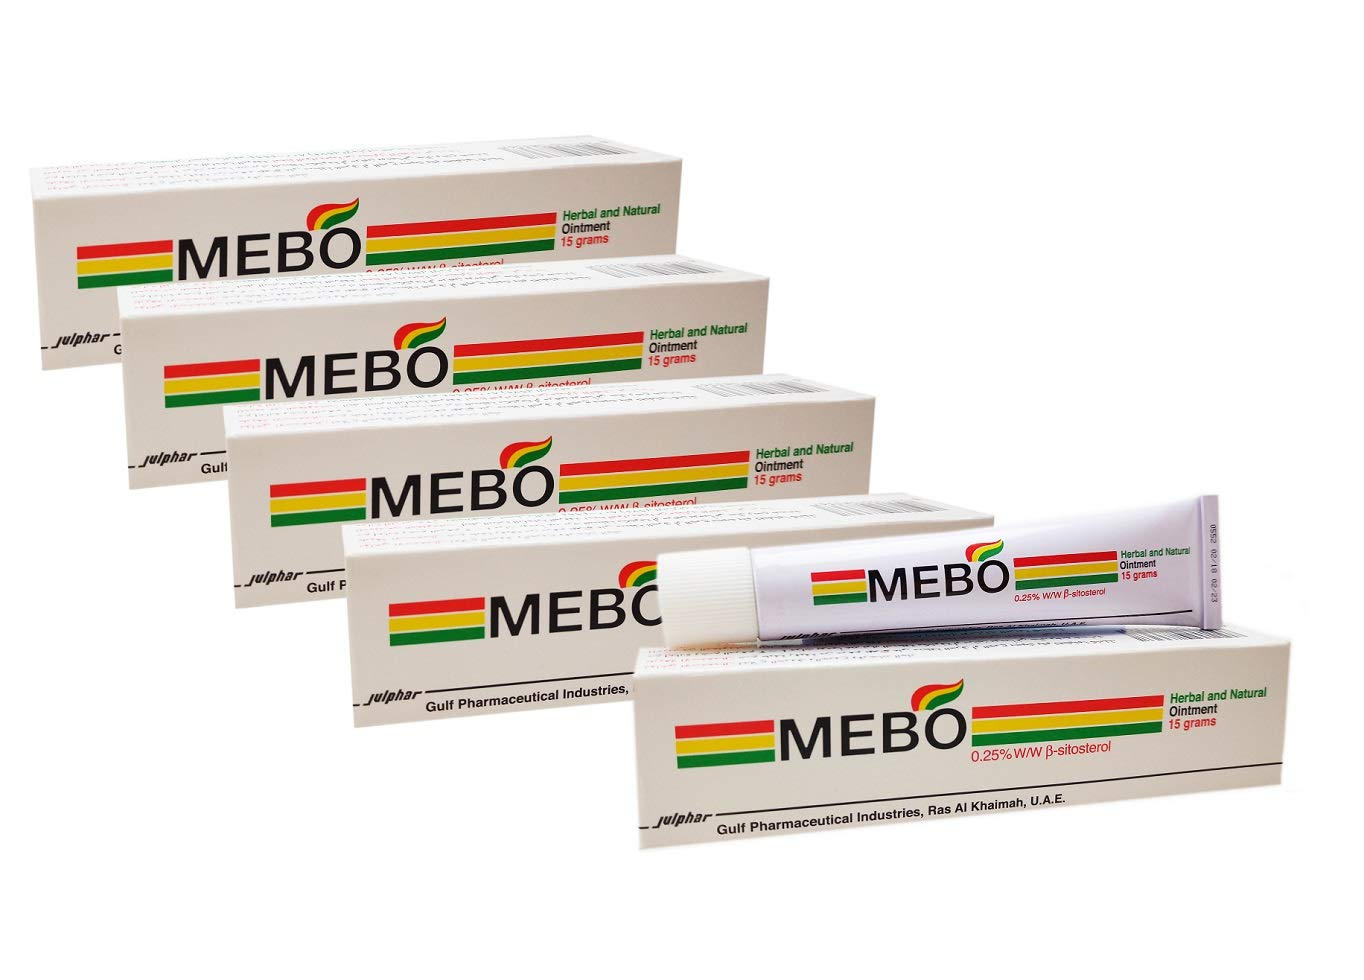 MEBO Burn Fast Relief Pain Cream Skin Healing Ointment Wound & Scar No Marks Care Fast First Aid Health Beauty Care (5 Tubes = 75 grams) by MEBO